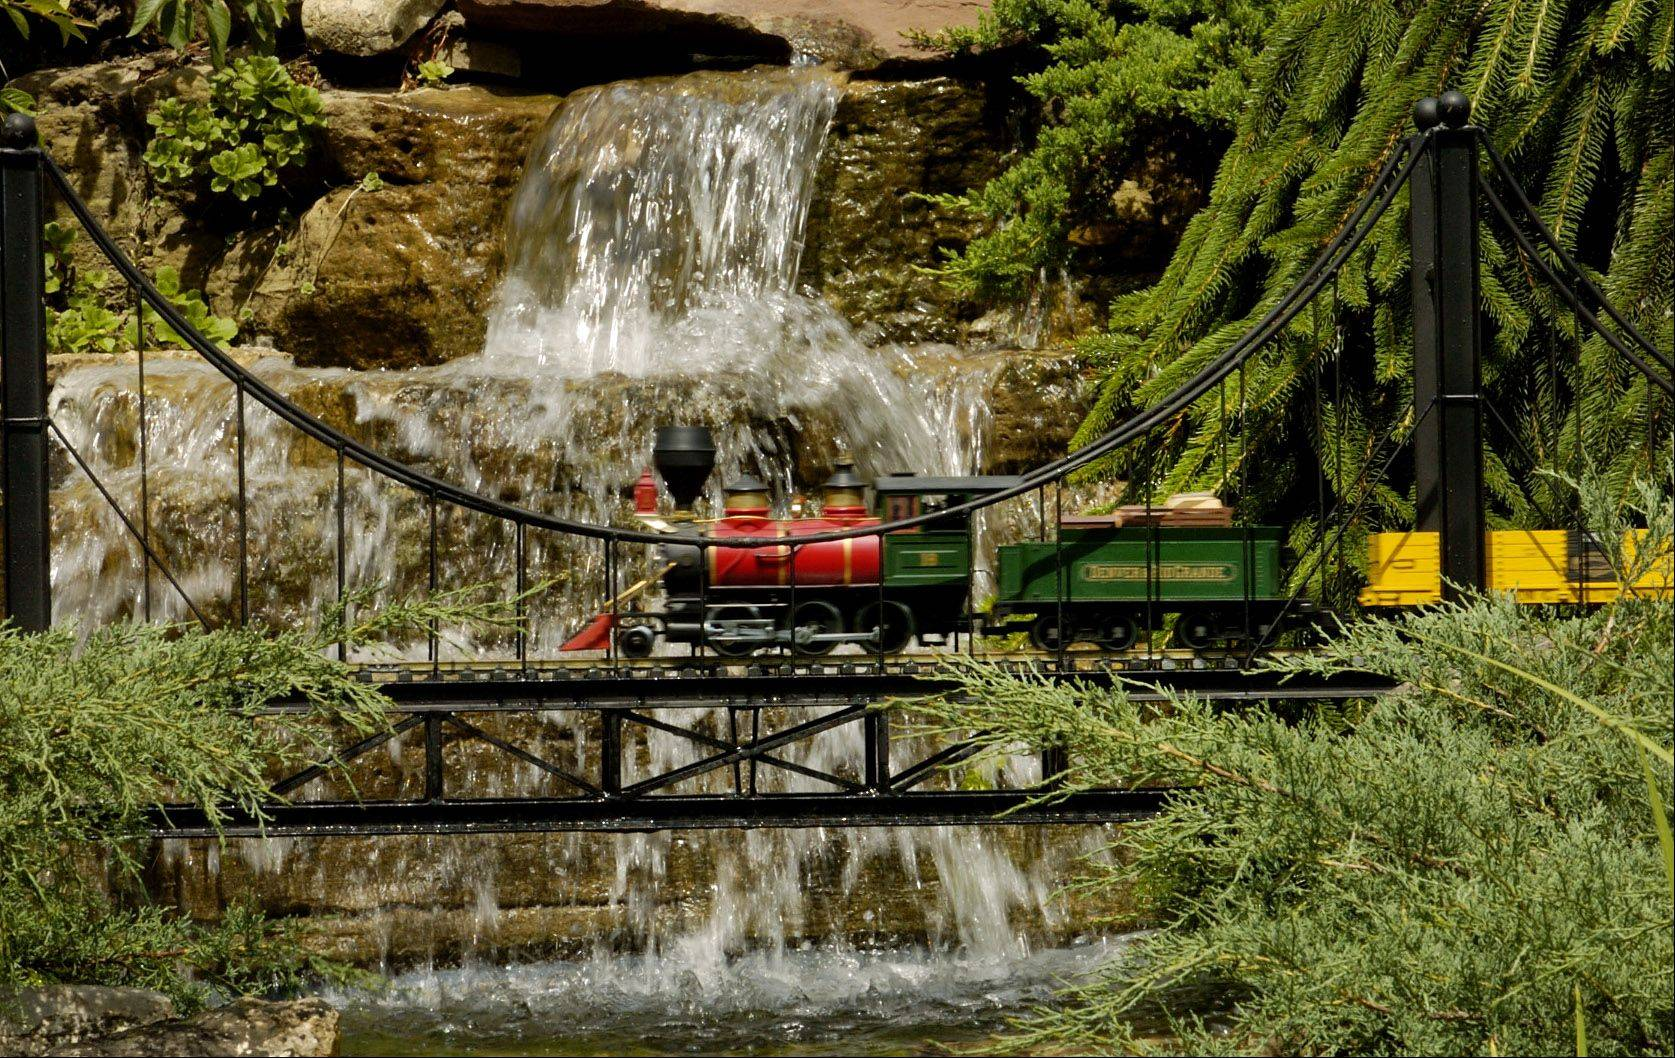 """Train Lady"" Elaine Silets's Japanese garden railway will be open to the public June 23. The rare public showing is a fundraiser for a scholarship fund created in honor of Silets' late husband, attorney Harvey M. Silets."